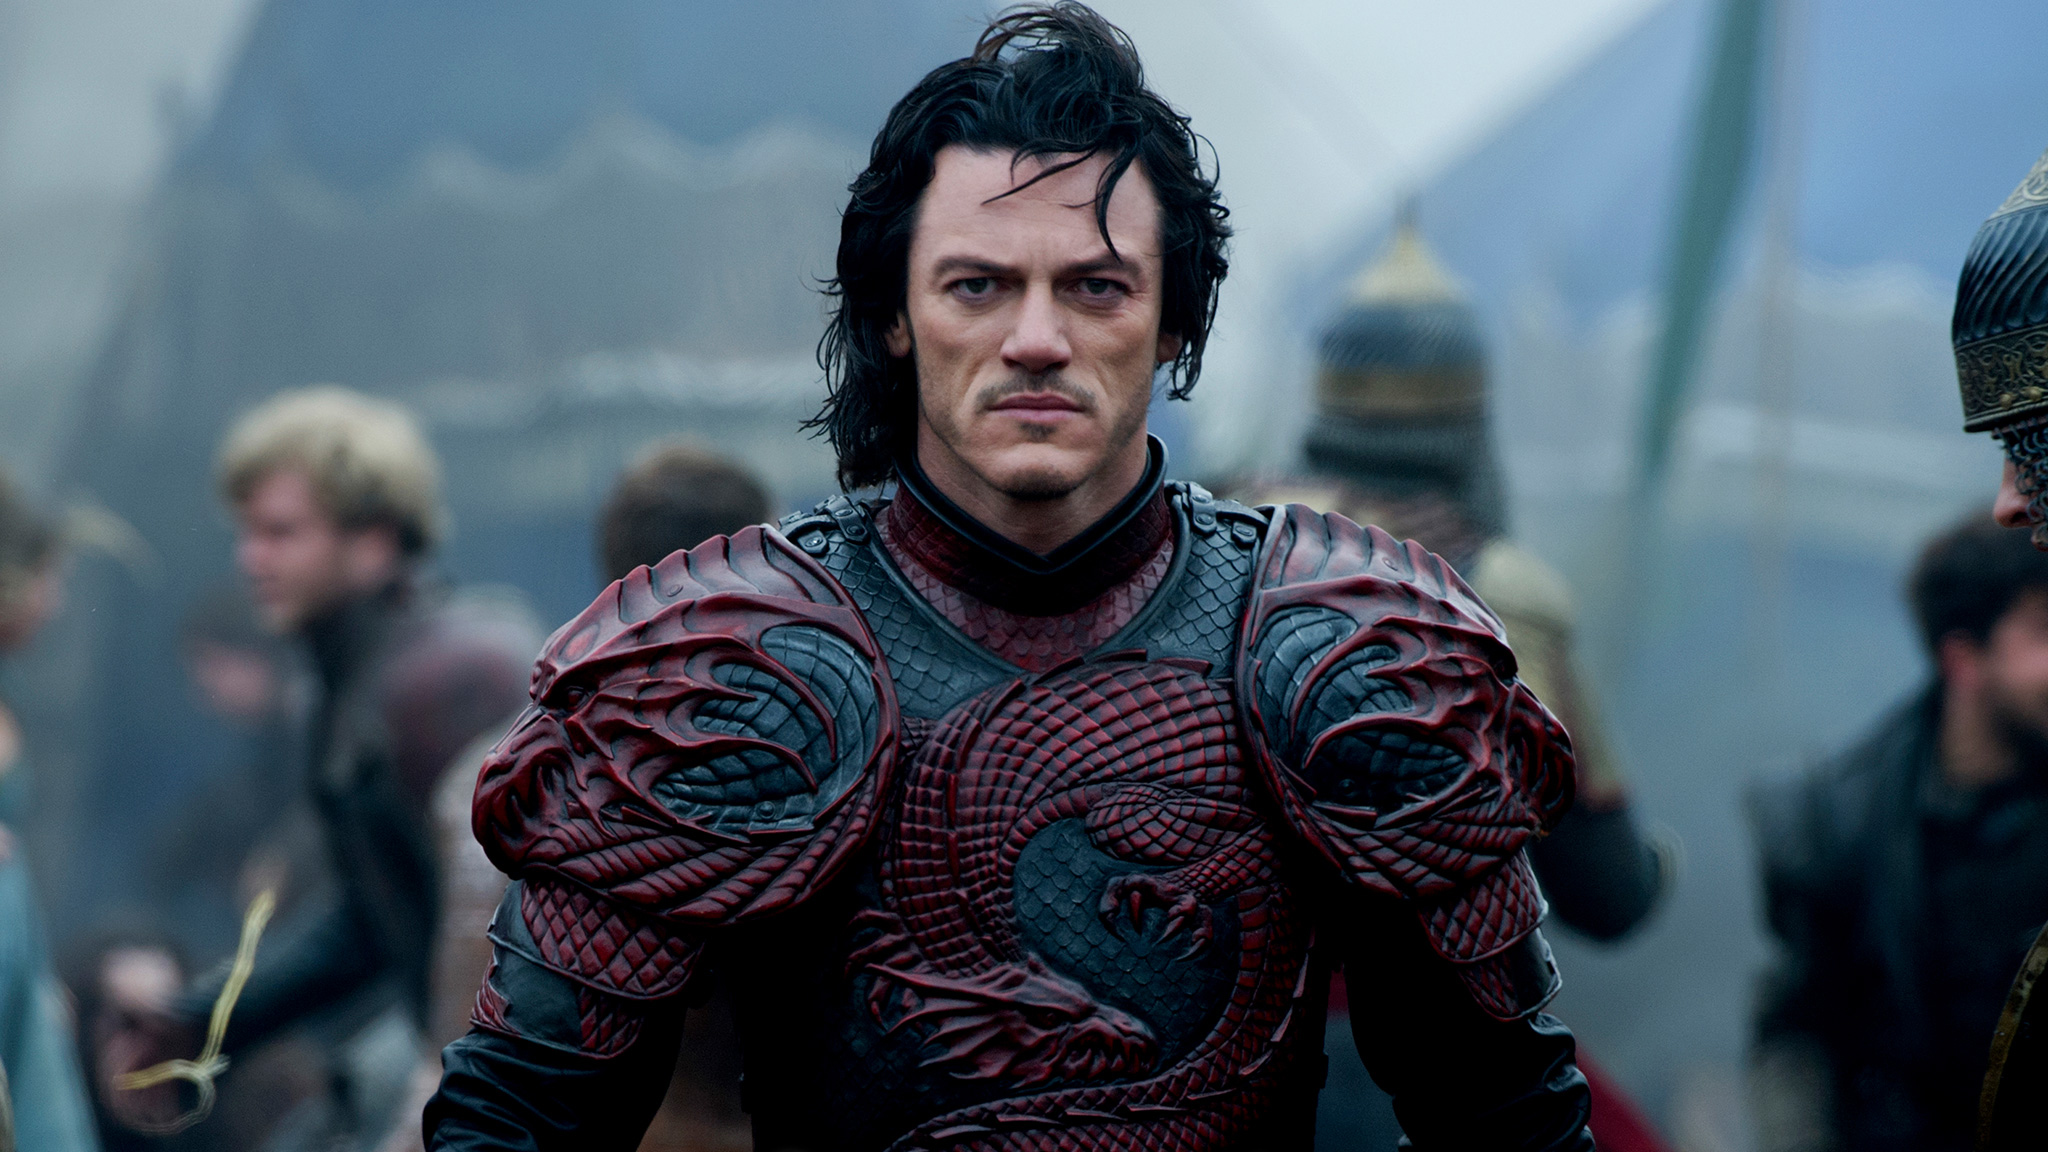 Dracula Untold Retina Movie Wallpaper: Dracula Untold Computer Wallpapers, Desktop Backgrounds